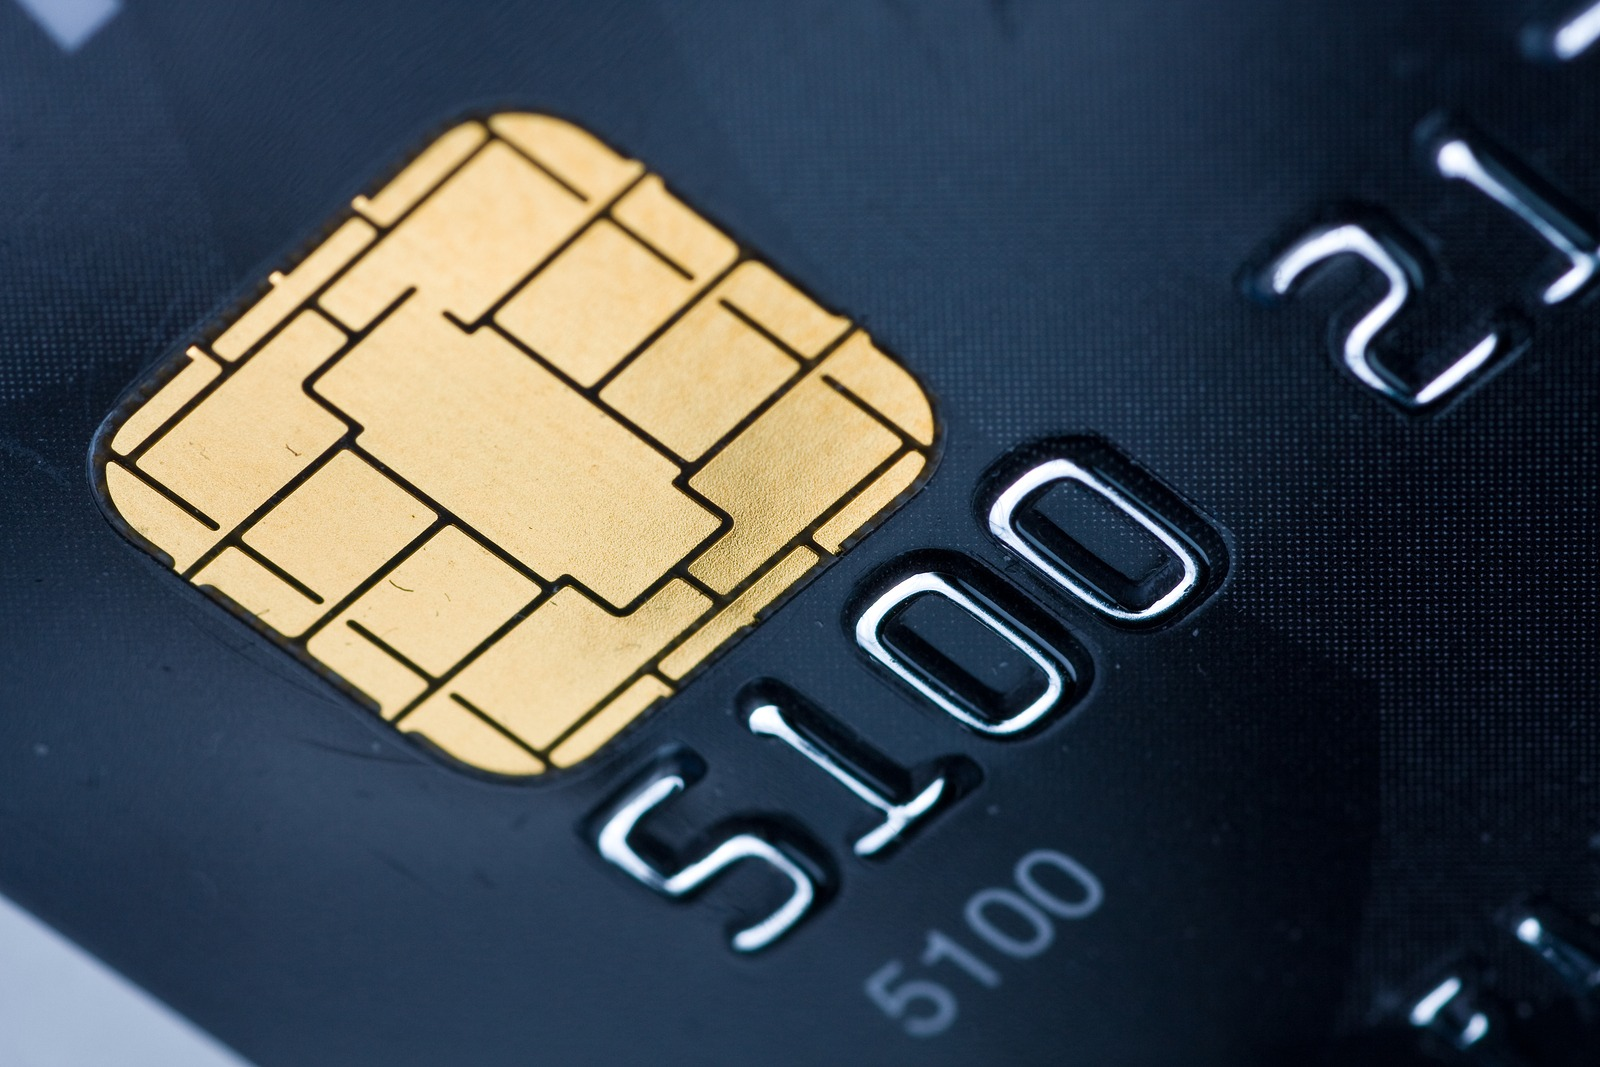 Funding Options for Small Business - Don't Overlook Credit Card Rewards